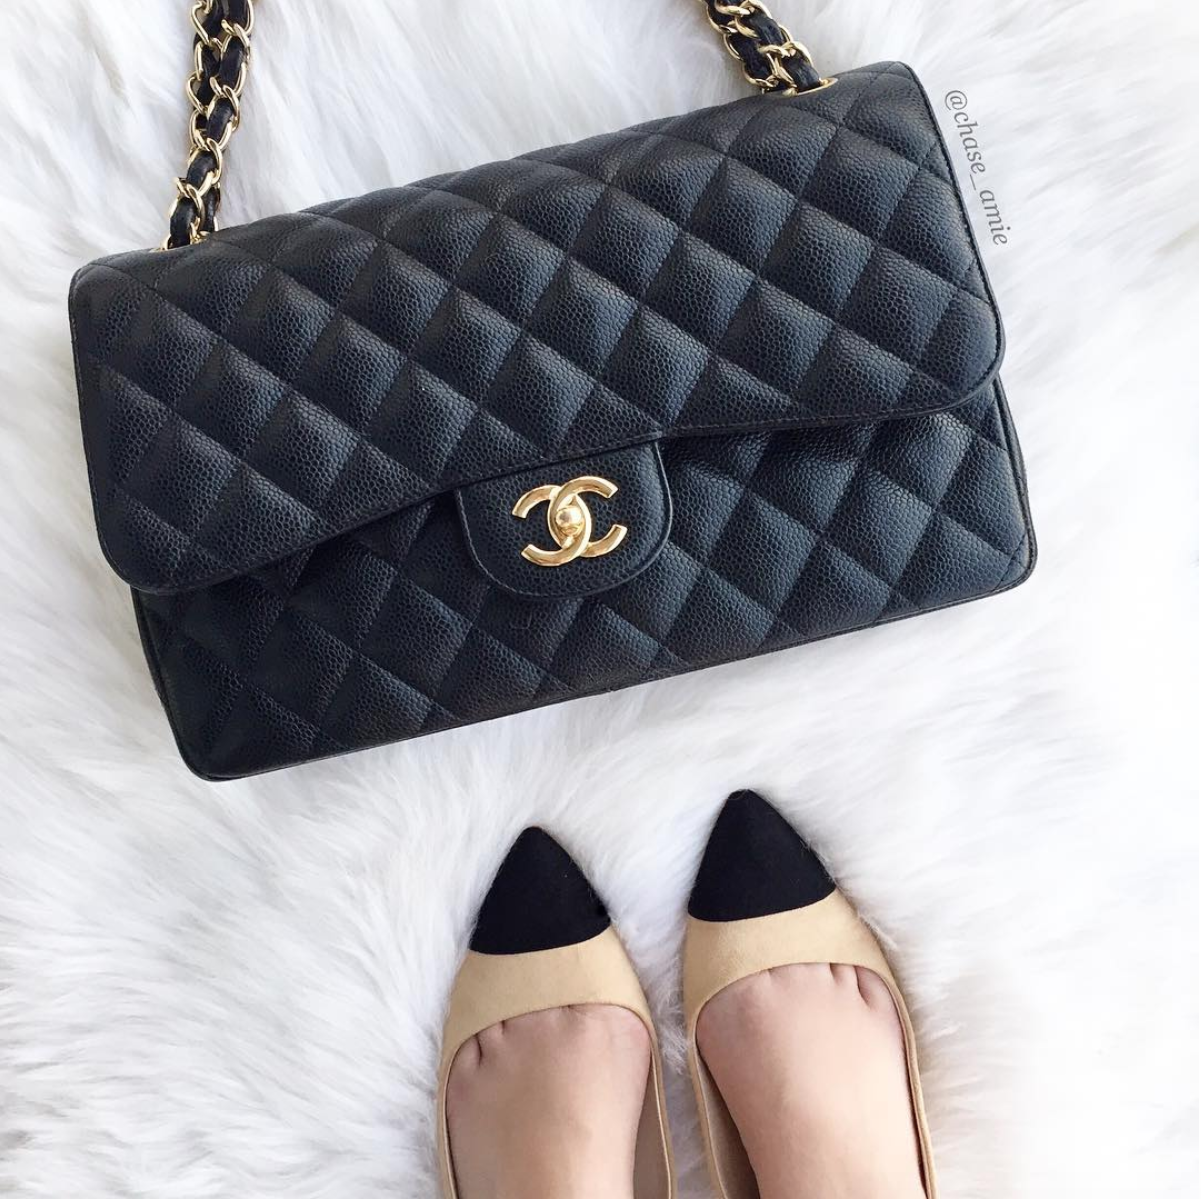 ffc472a1a3ad Chanel 101: Lambskin vs. Caviar | Which is Best? - Chase Amie